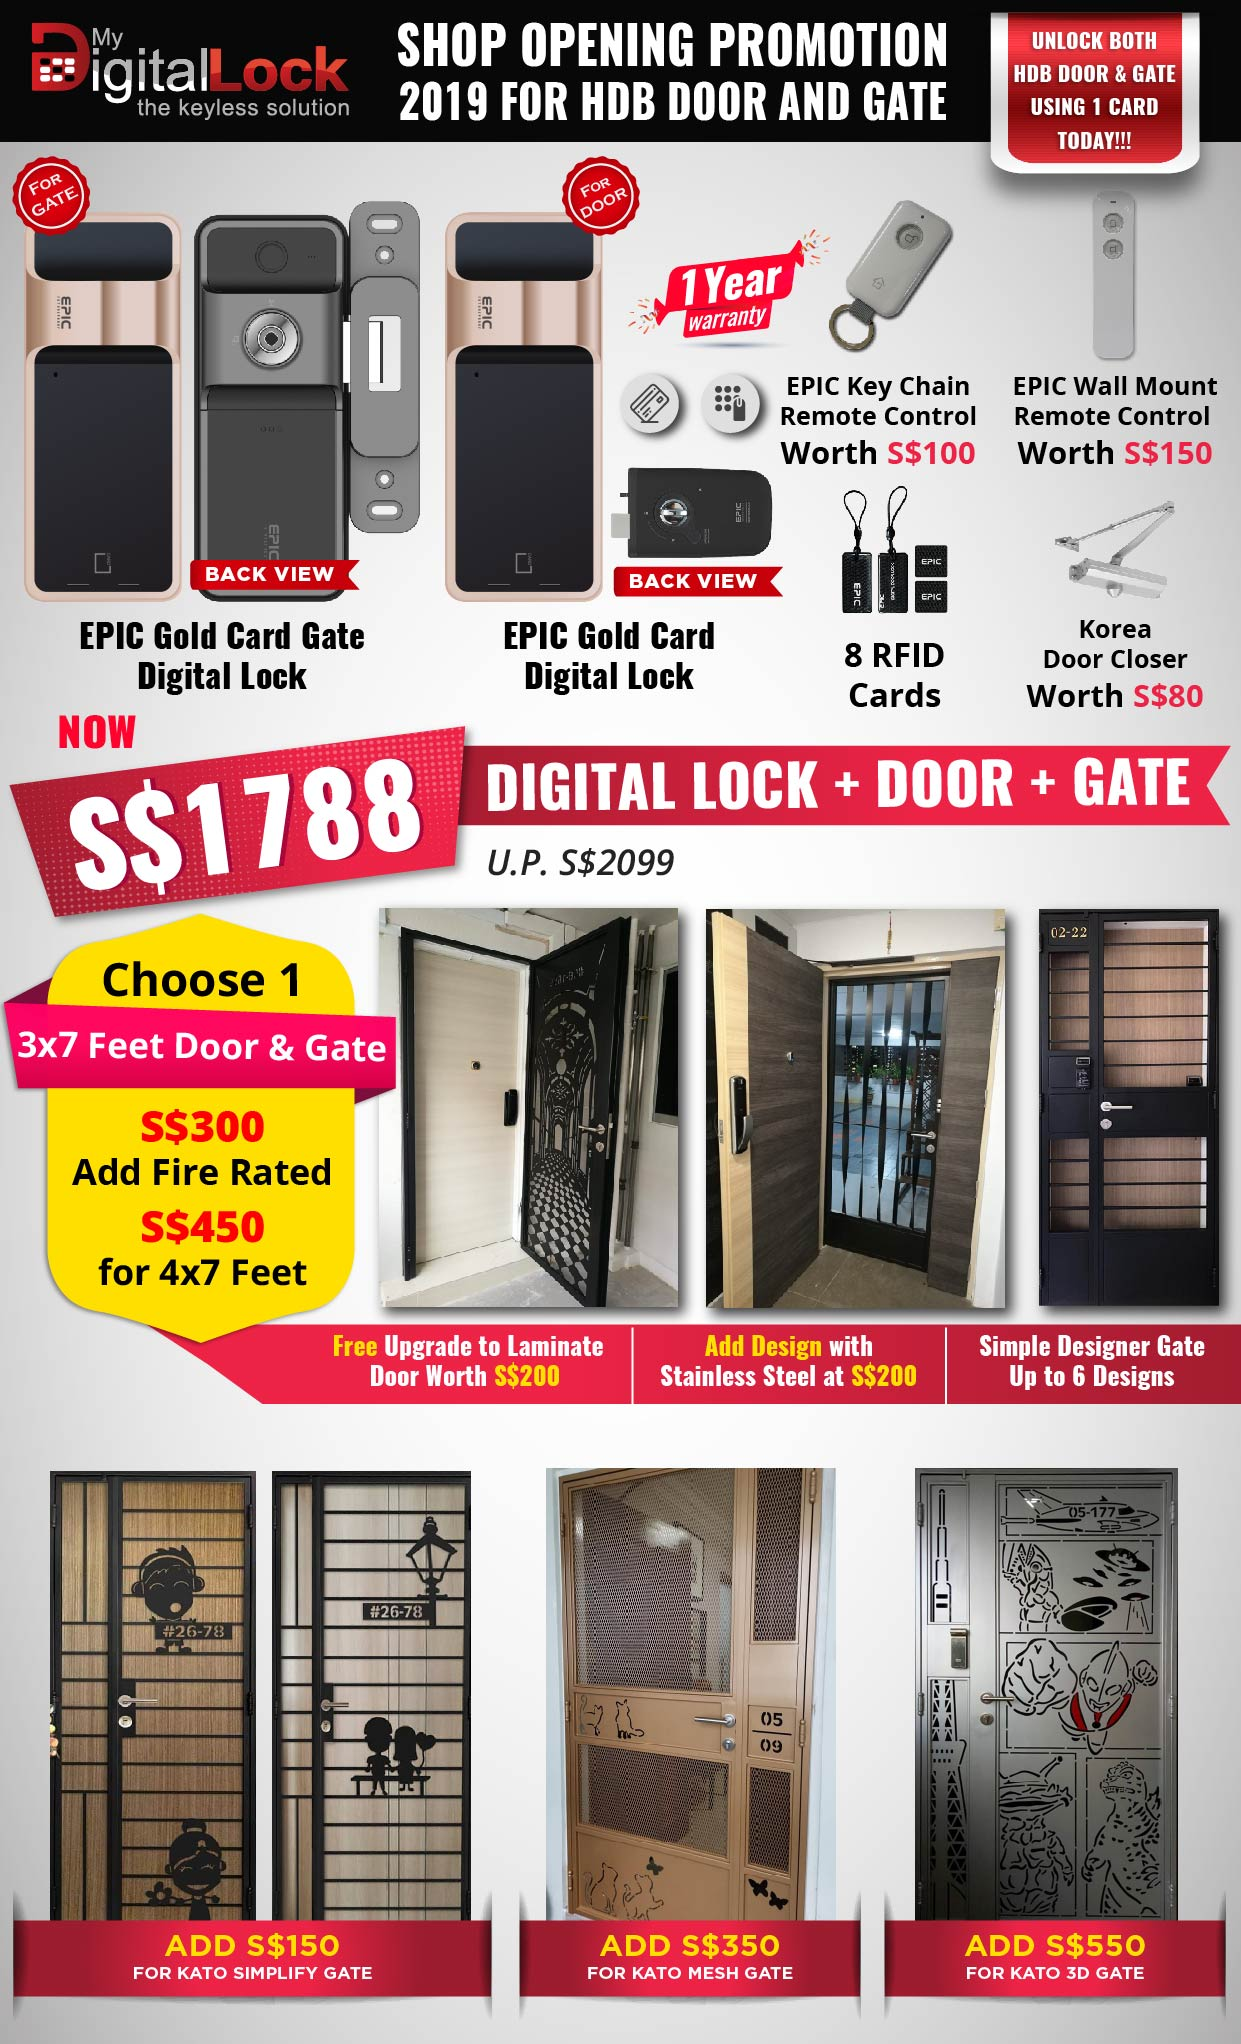 EPIC-Gold-Card-Gate-Digital-Lock-2